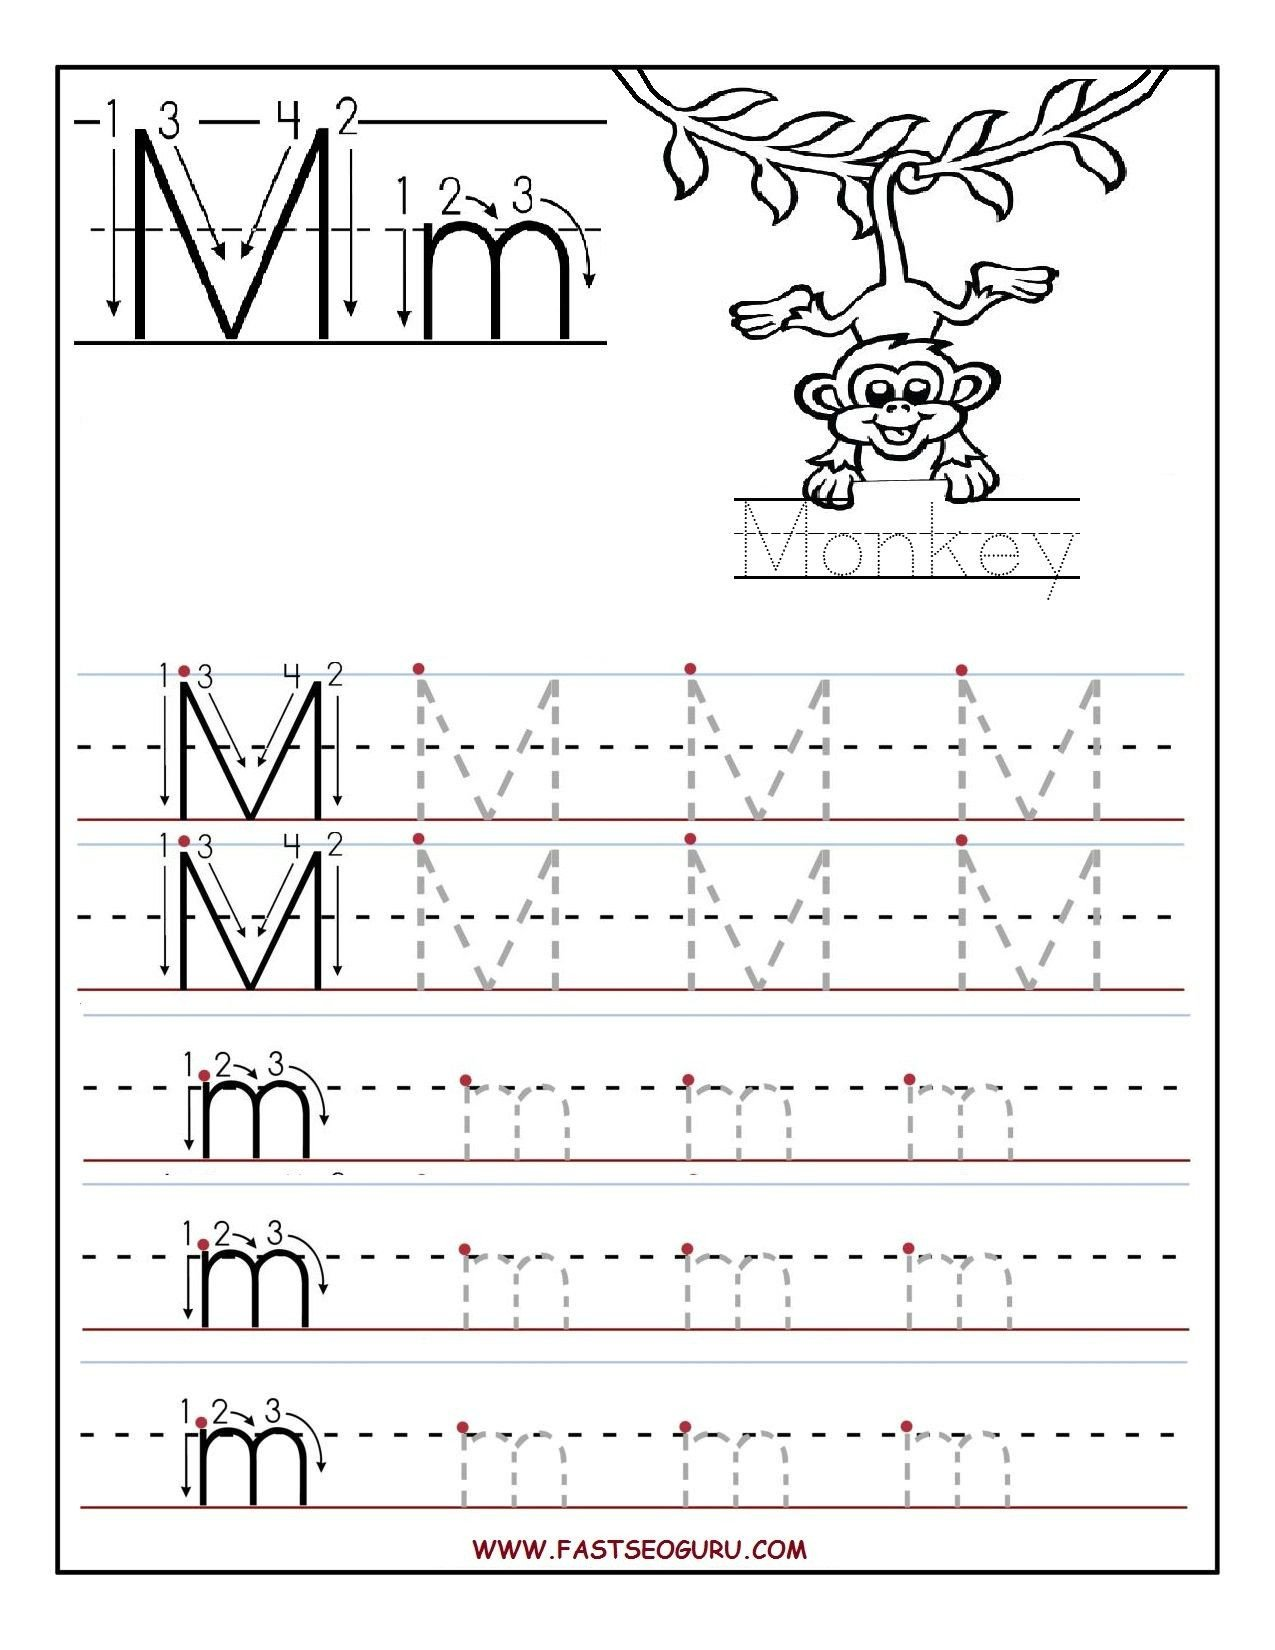 M Worksheets Preschool Printable Letter M Tracing Worksheets for Preschool